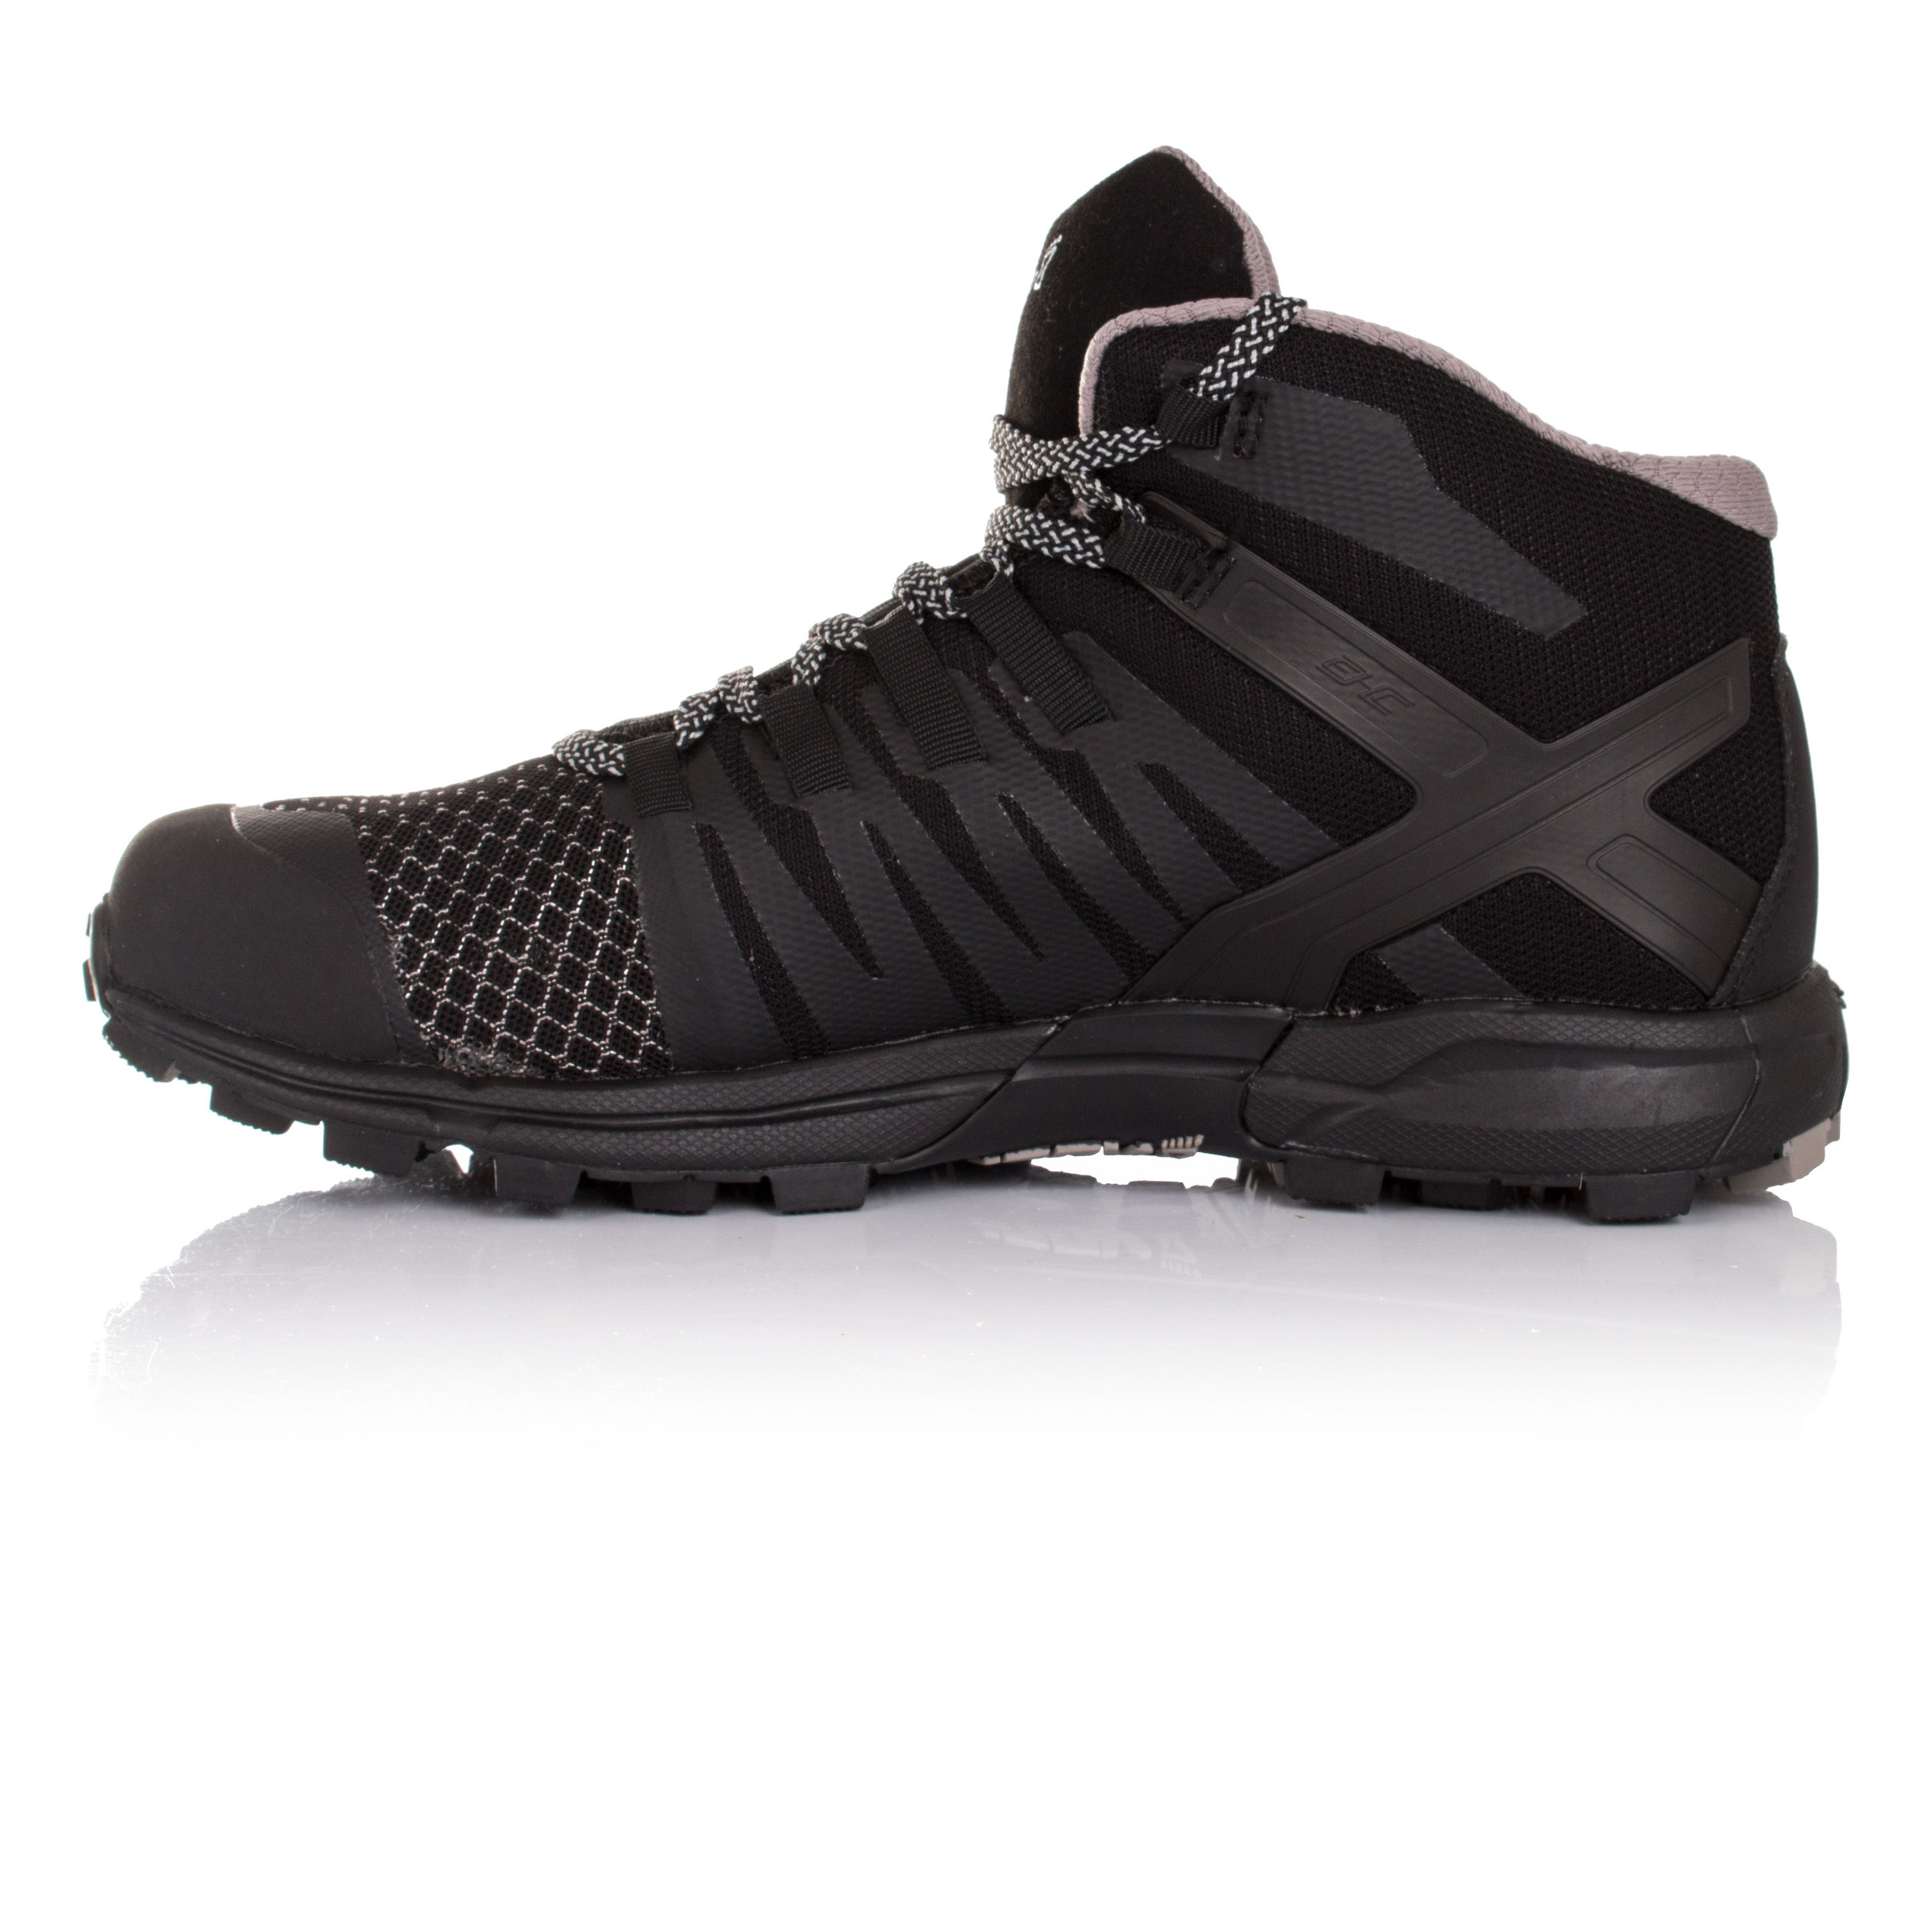 Inov8-Roclite-325-Mens-Black-Waterproof-Gore-Tex-Running-Sports-Shoes-Trainers thumbnail 8